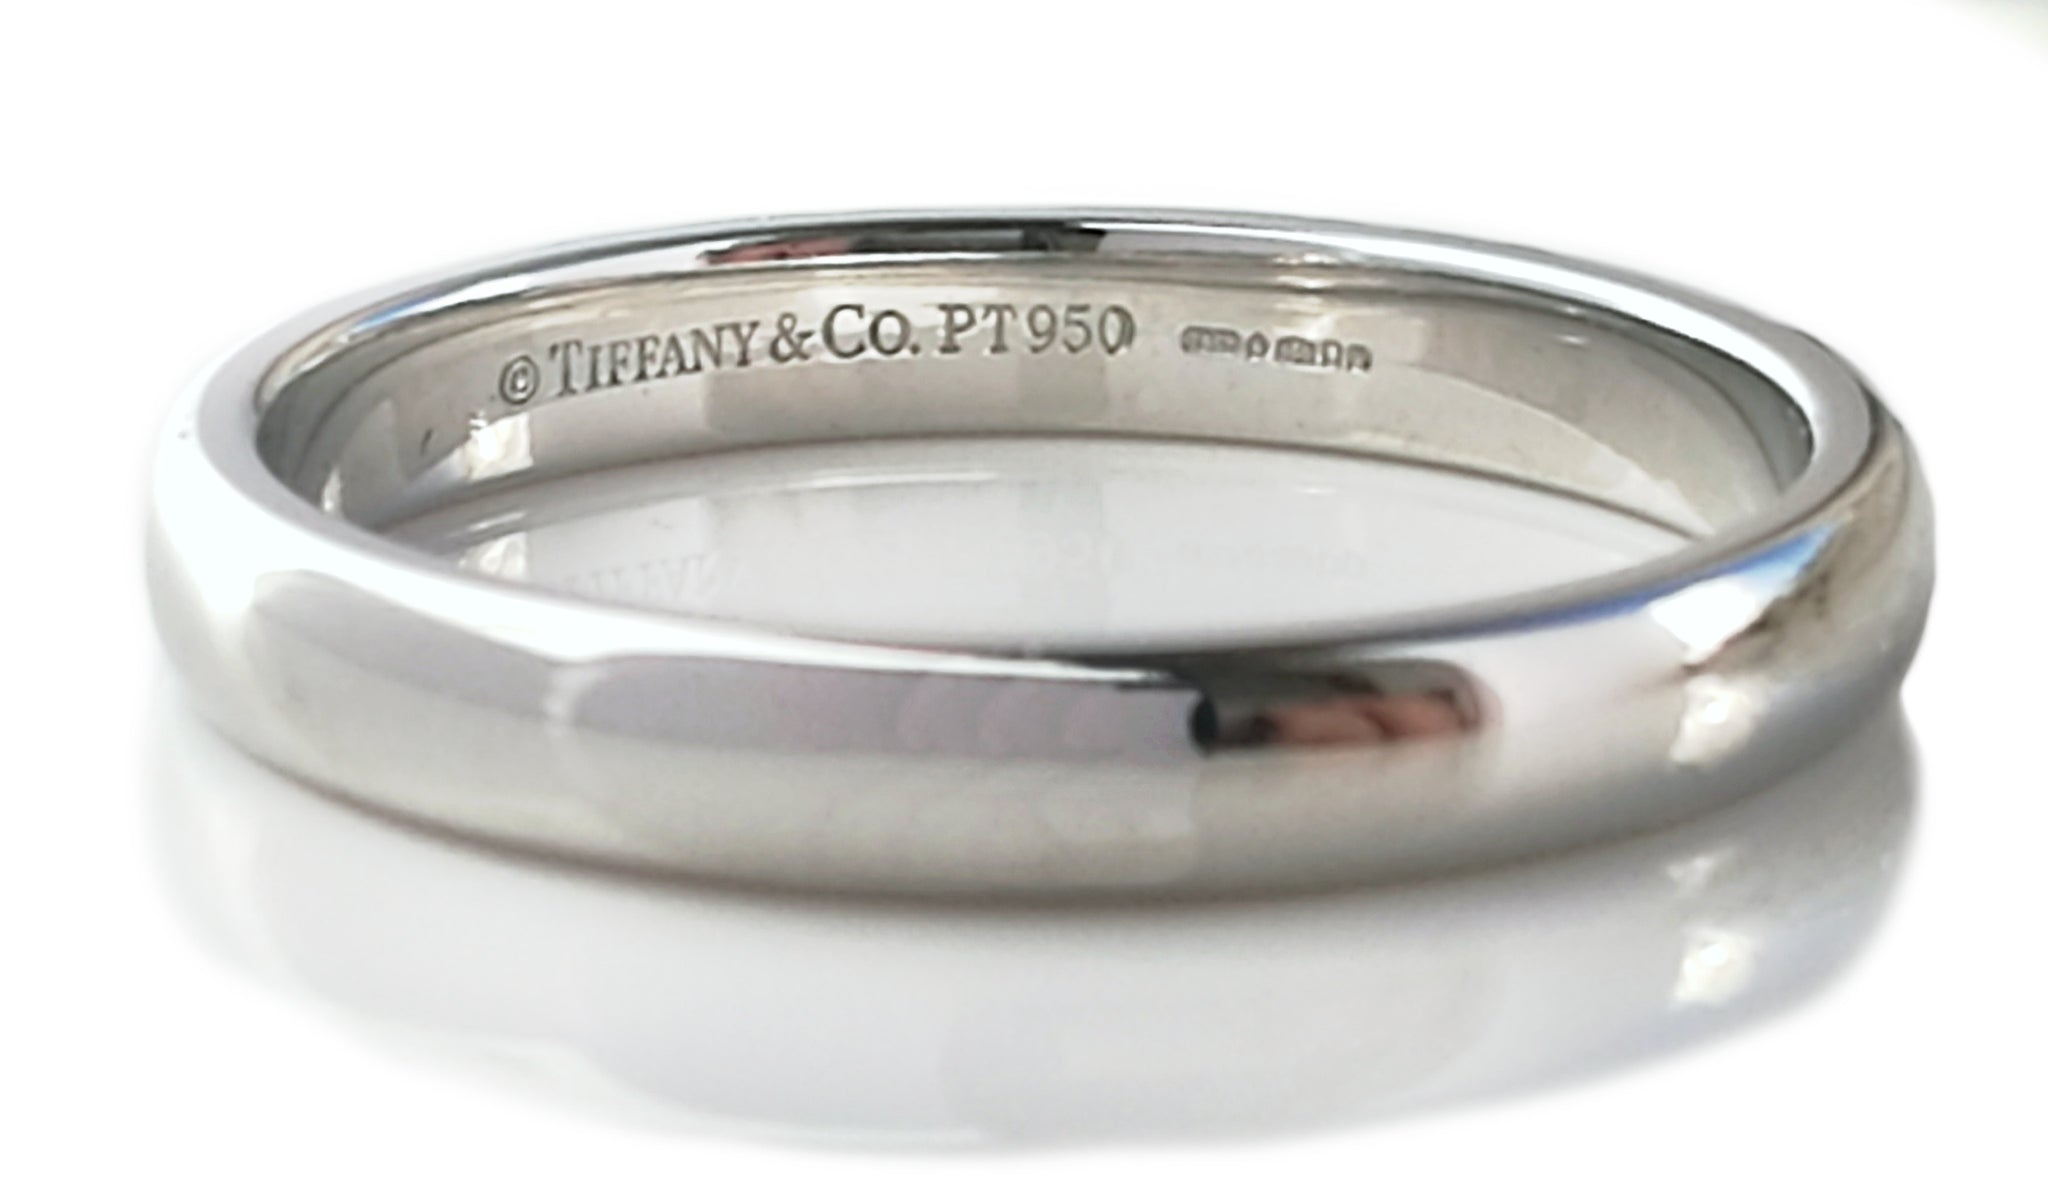 Tiffany & Co. 3mm Classic Wedding Band Ring